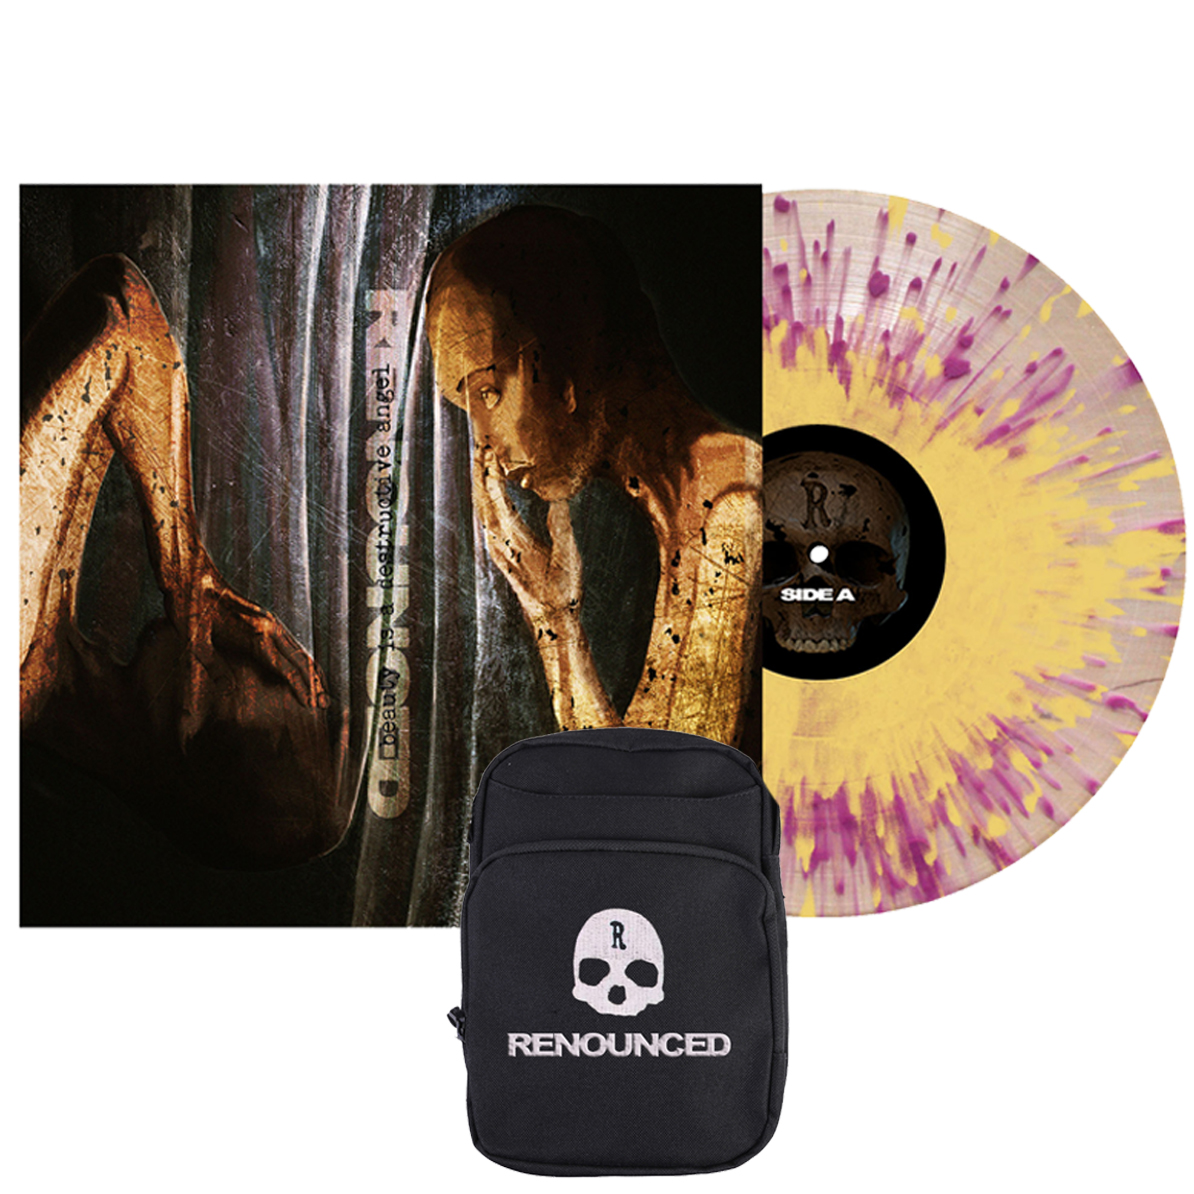 Renounced - Beauty Is A Destructive Angel vinyl LP + body bag PREORDER